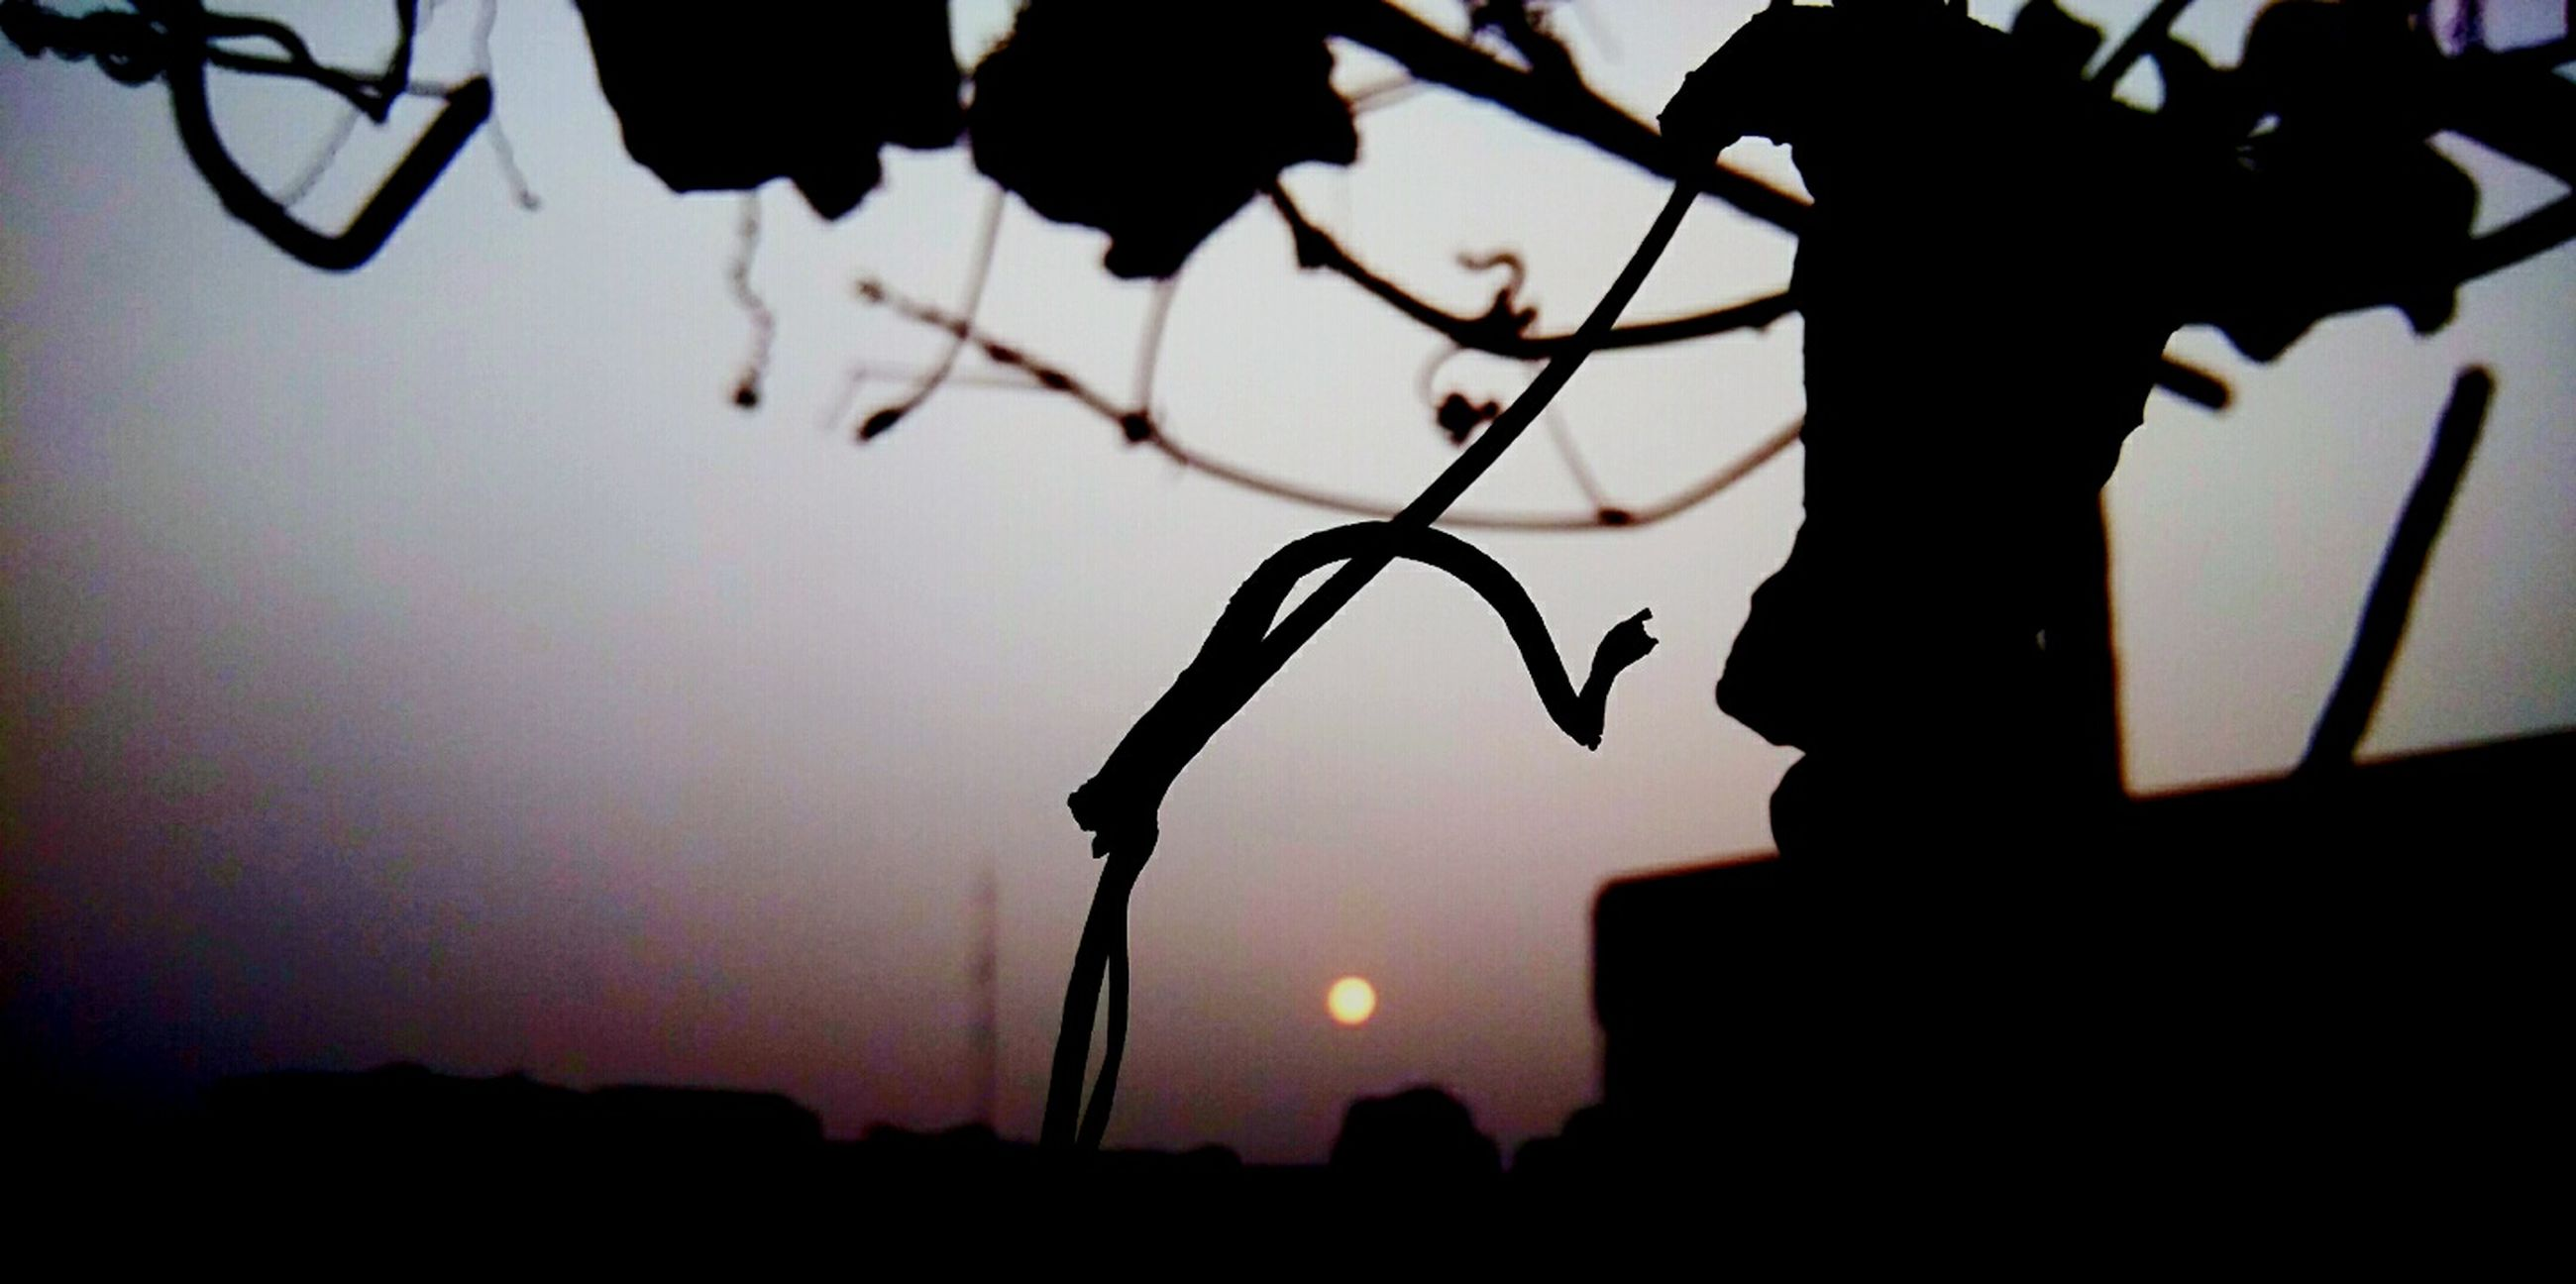 silhouette, branch, low angle view, sunset, tree, sky, dusk, focus on foreground, outline, nature, close-up, growth, outdoors, no people, street light, beauty in nature, hanging, tranquility, twig, tree trunk